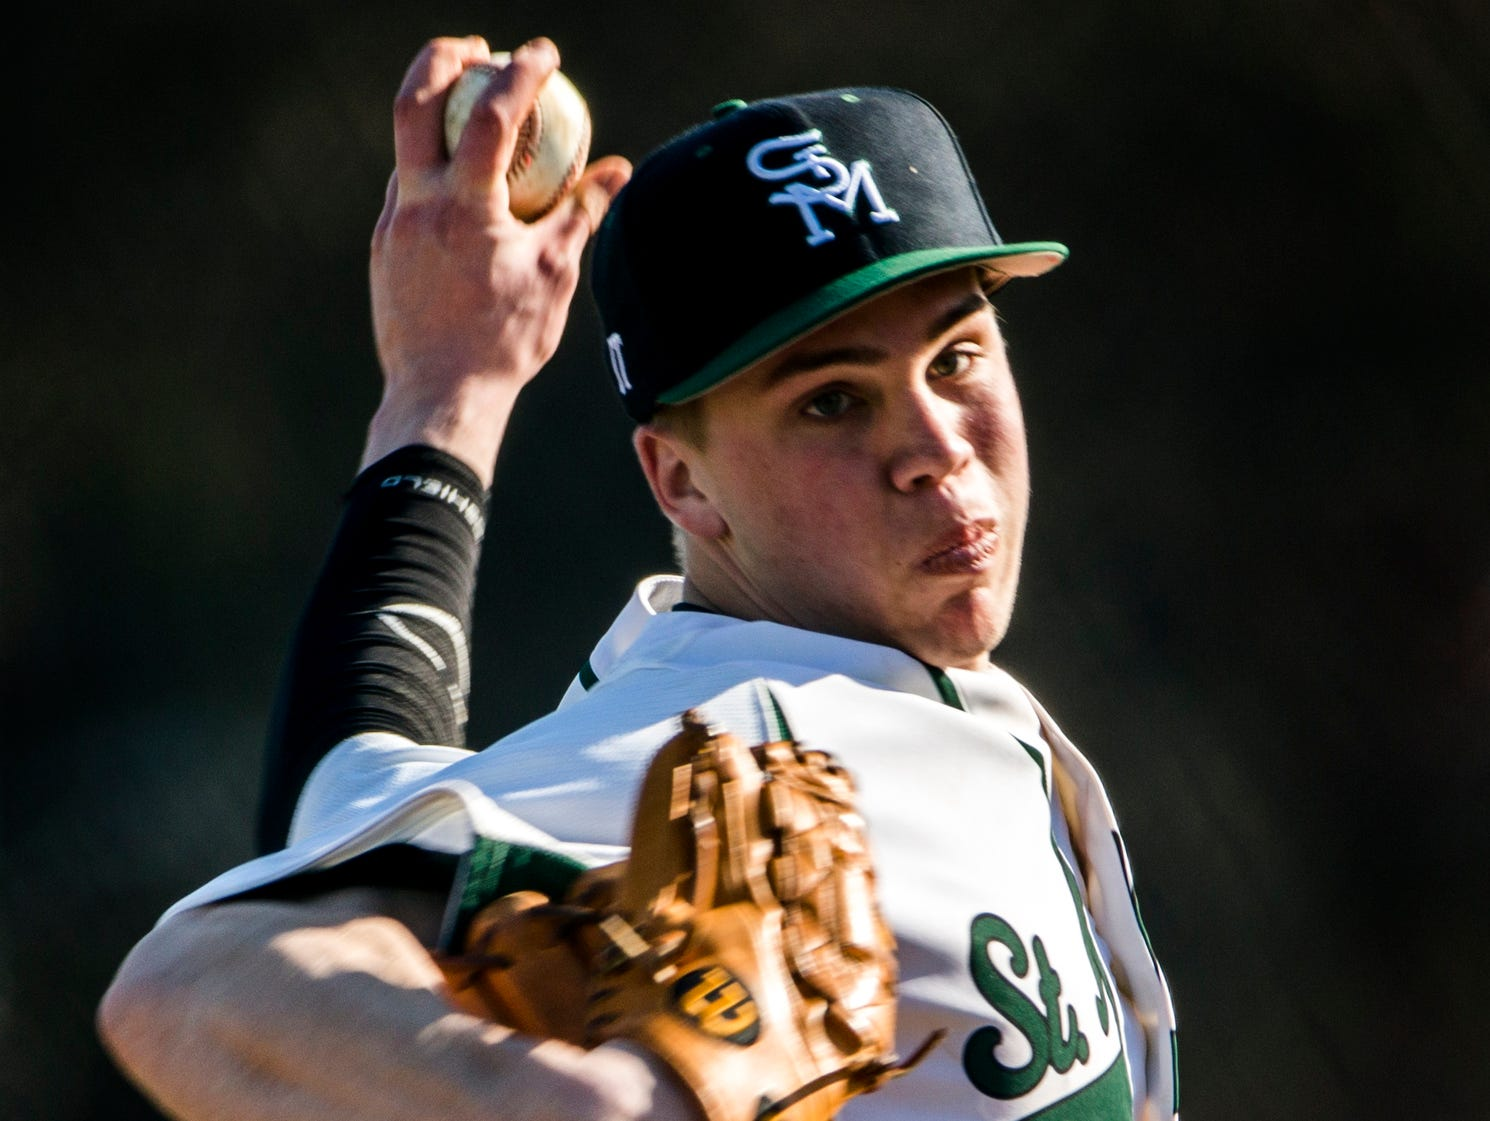 St. Mark's pitcher Andrew Reich delivers a pitch in St. Mark's 12-0 win over Hodgson at St. Mark's High School on Wednesday afternoon. Reich pitched a no-hitter over a five-inning complete game.